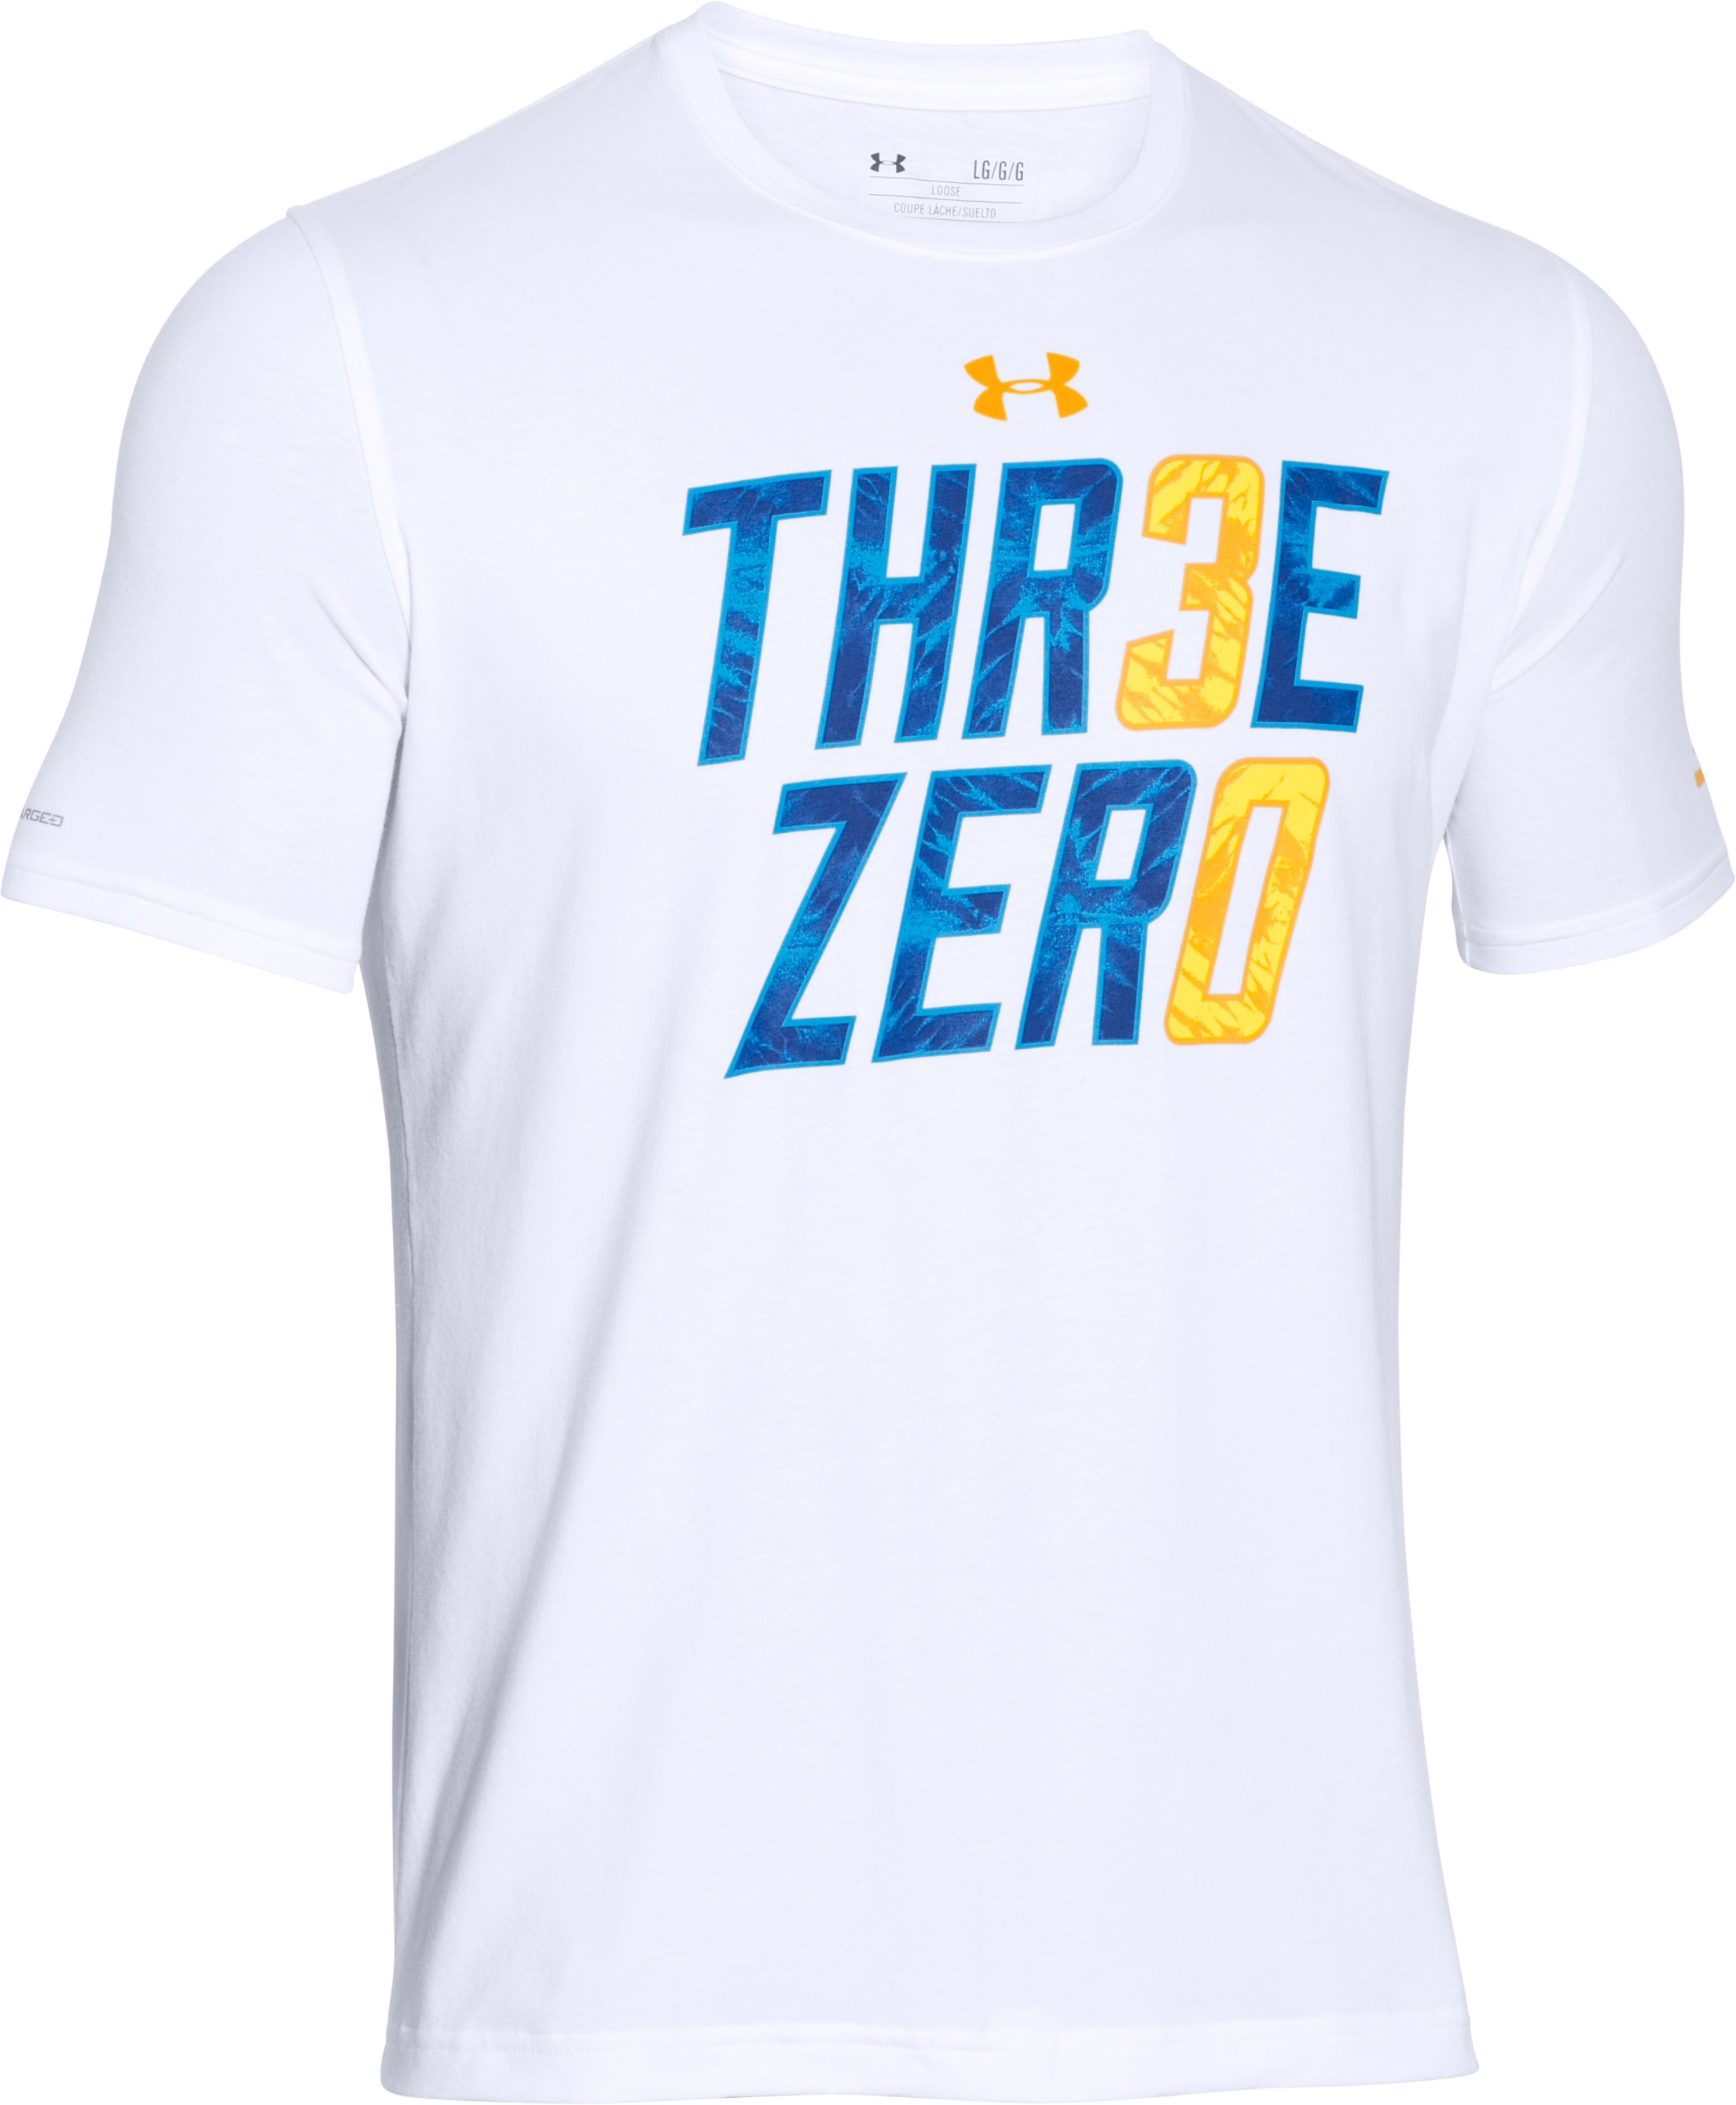 Men's SC30 Three Zero T-Shirt, White, undefined